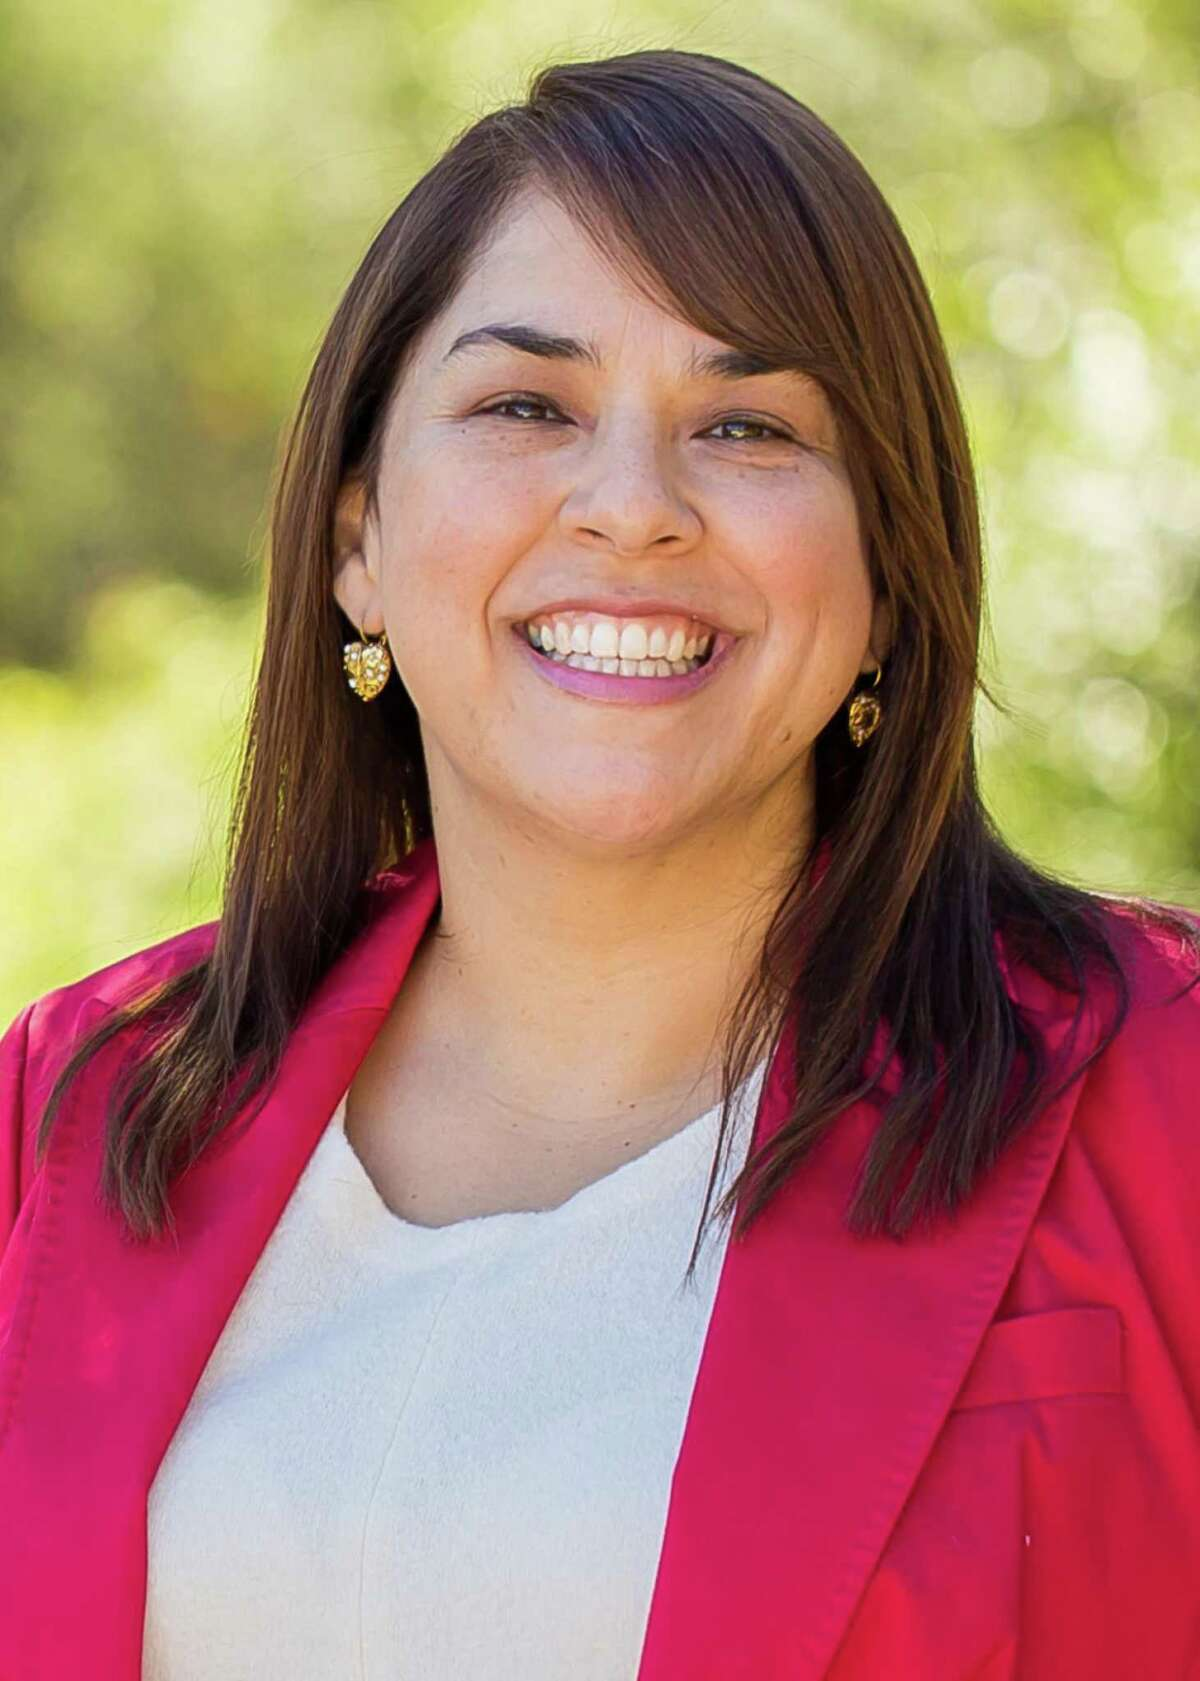 Phyllis Viagran, sister of District 3 City Councilwoman Rebecca Viagran who has reached the end of her term limits, is running for the same seat.